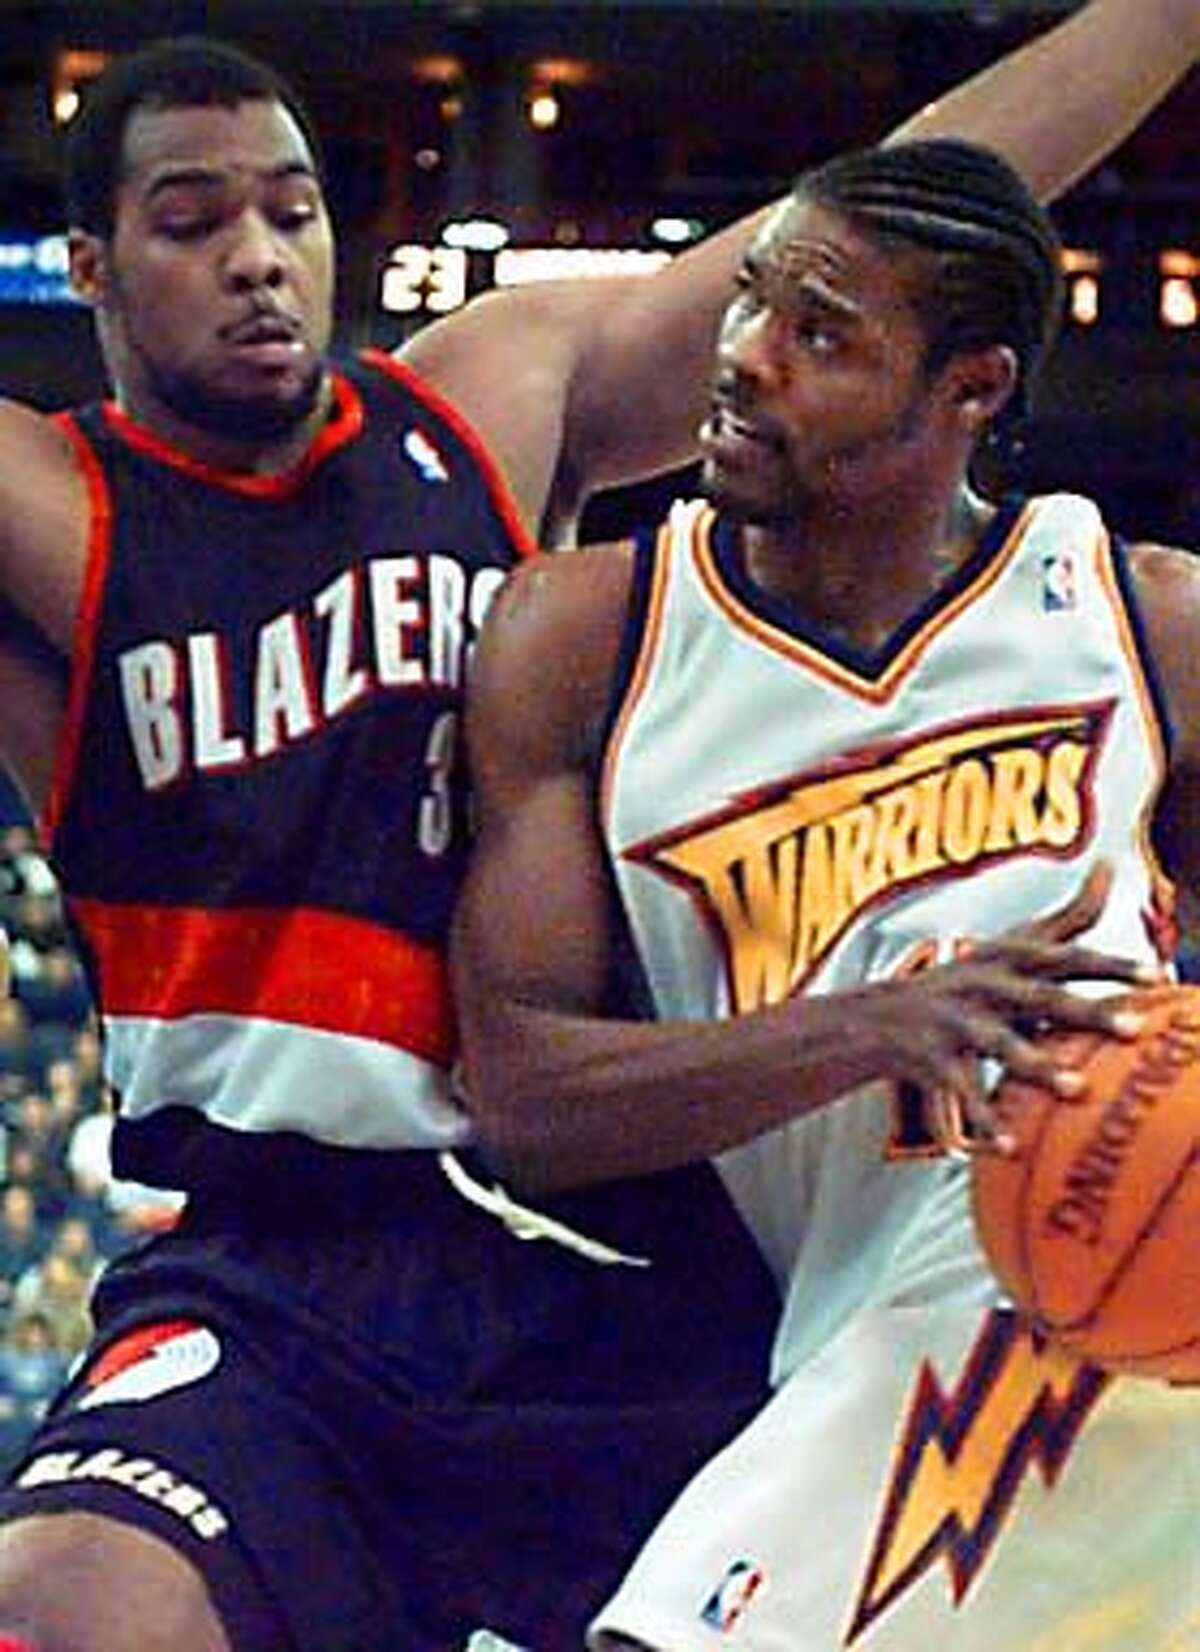 Golden State Warriors Latrell Sprewell, right, leans into Portland Trail Blazers Isaiah Rider, as he goes up for a basket in the first half, Saturday Nov. 15, 1997, in Oakland, Calif. AP Photo / Lacy Atkins